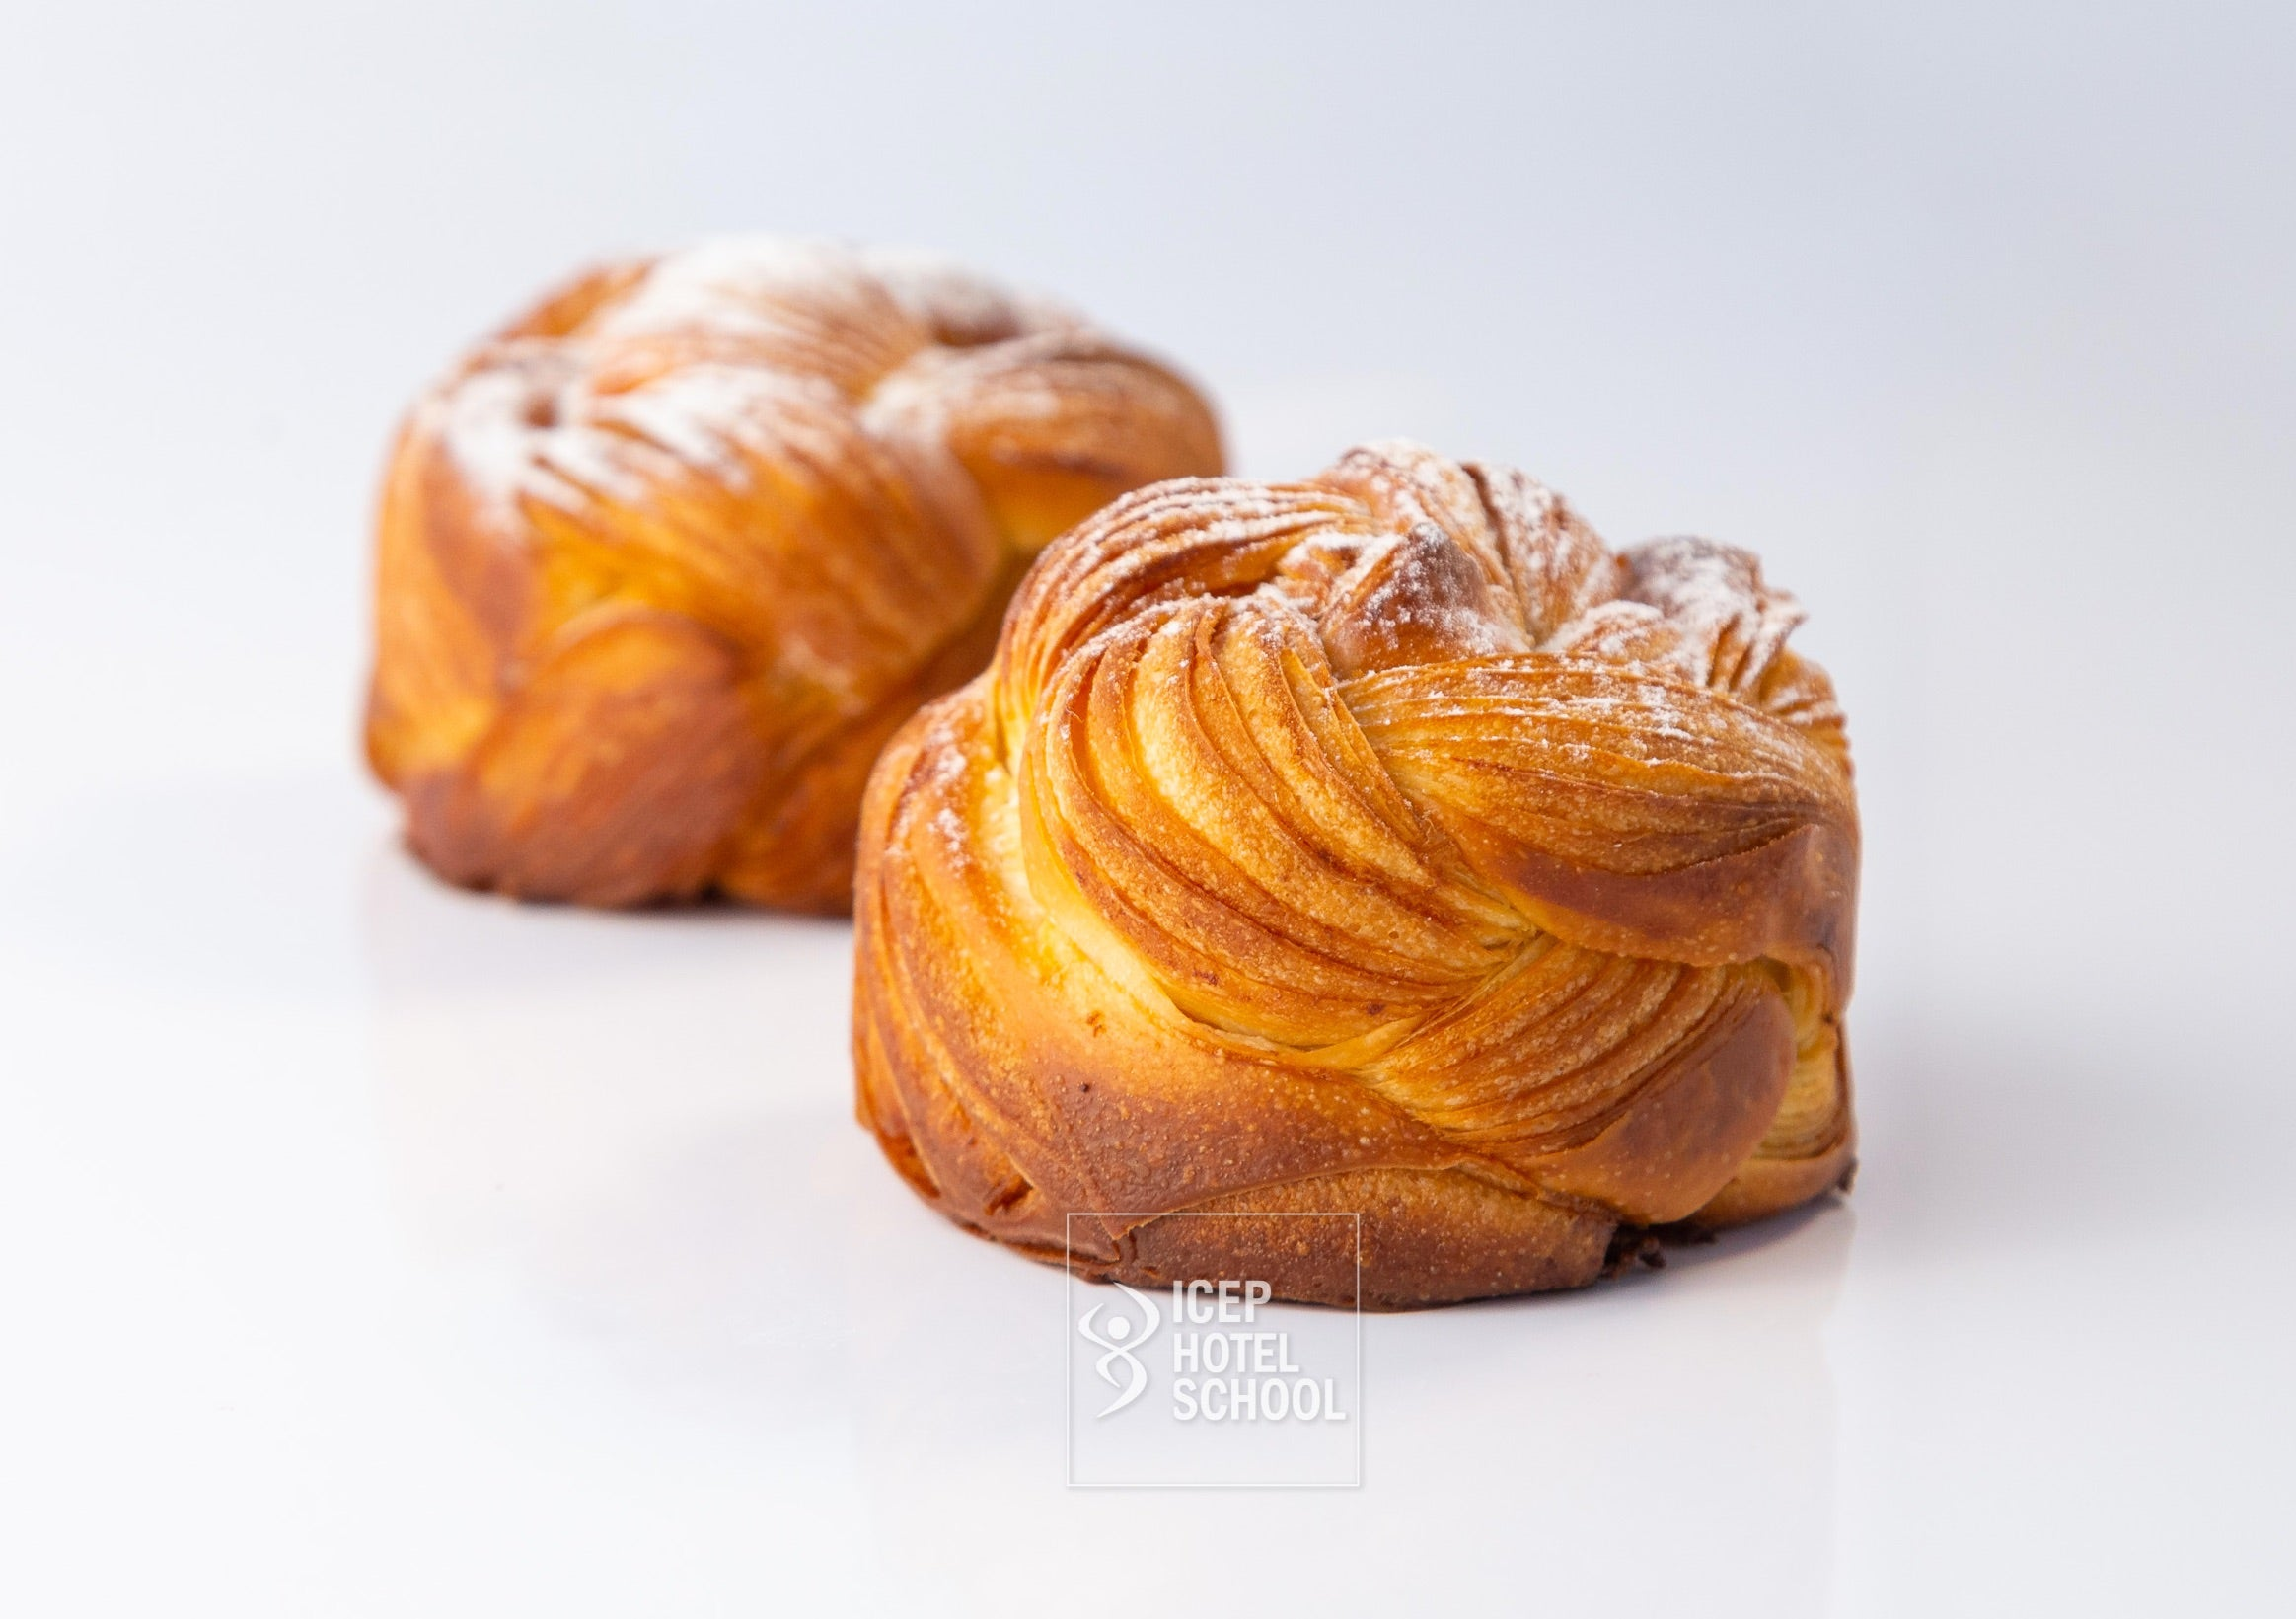 Curs Patiserie Moderna: Brioche & Mille Feuille by Mirela Cata